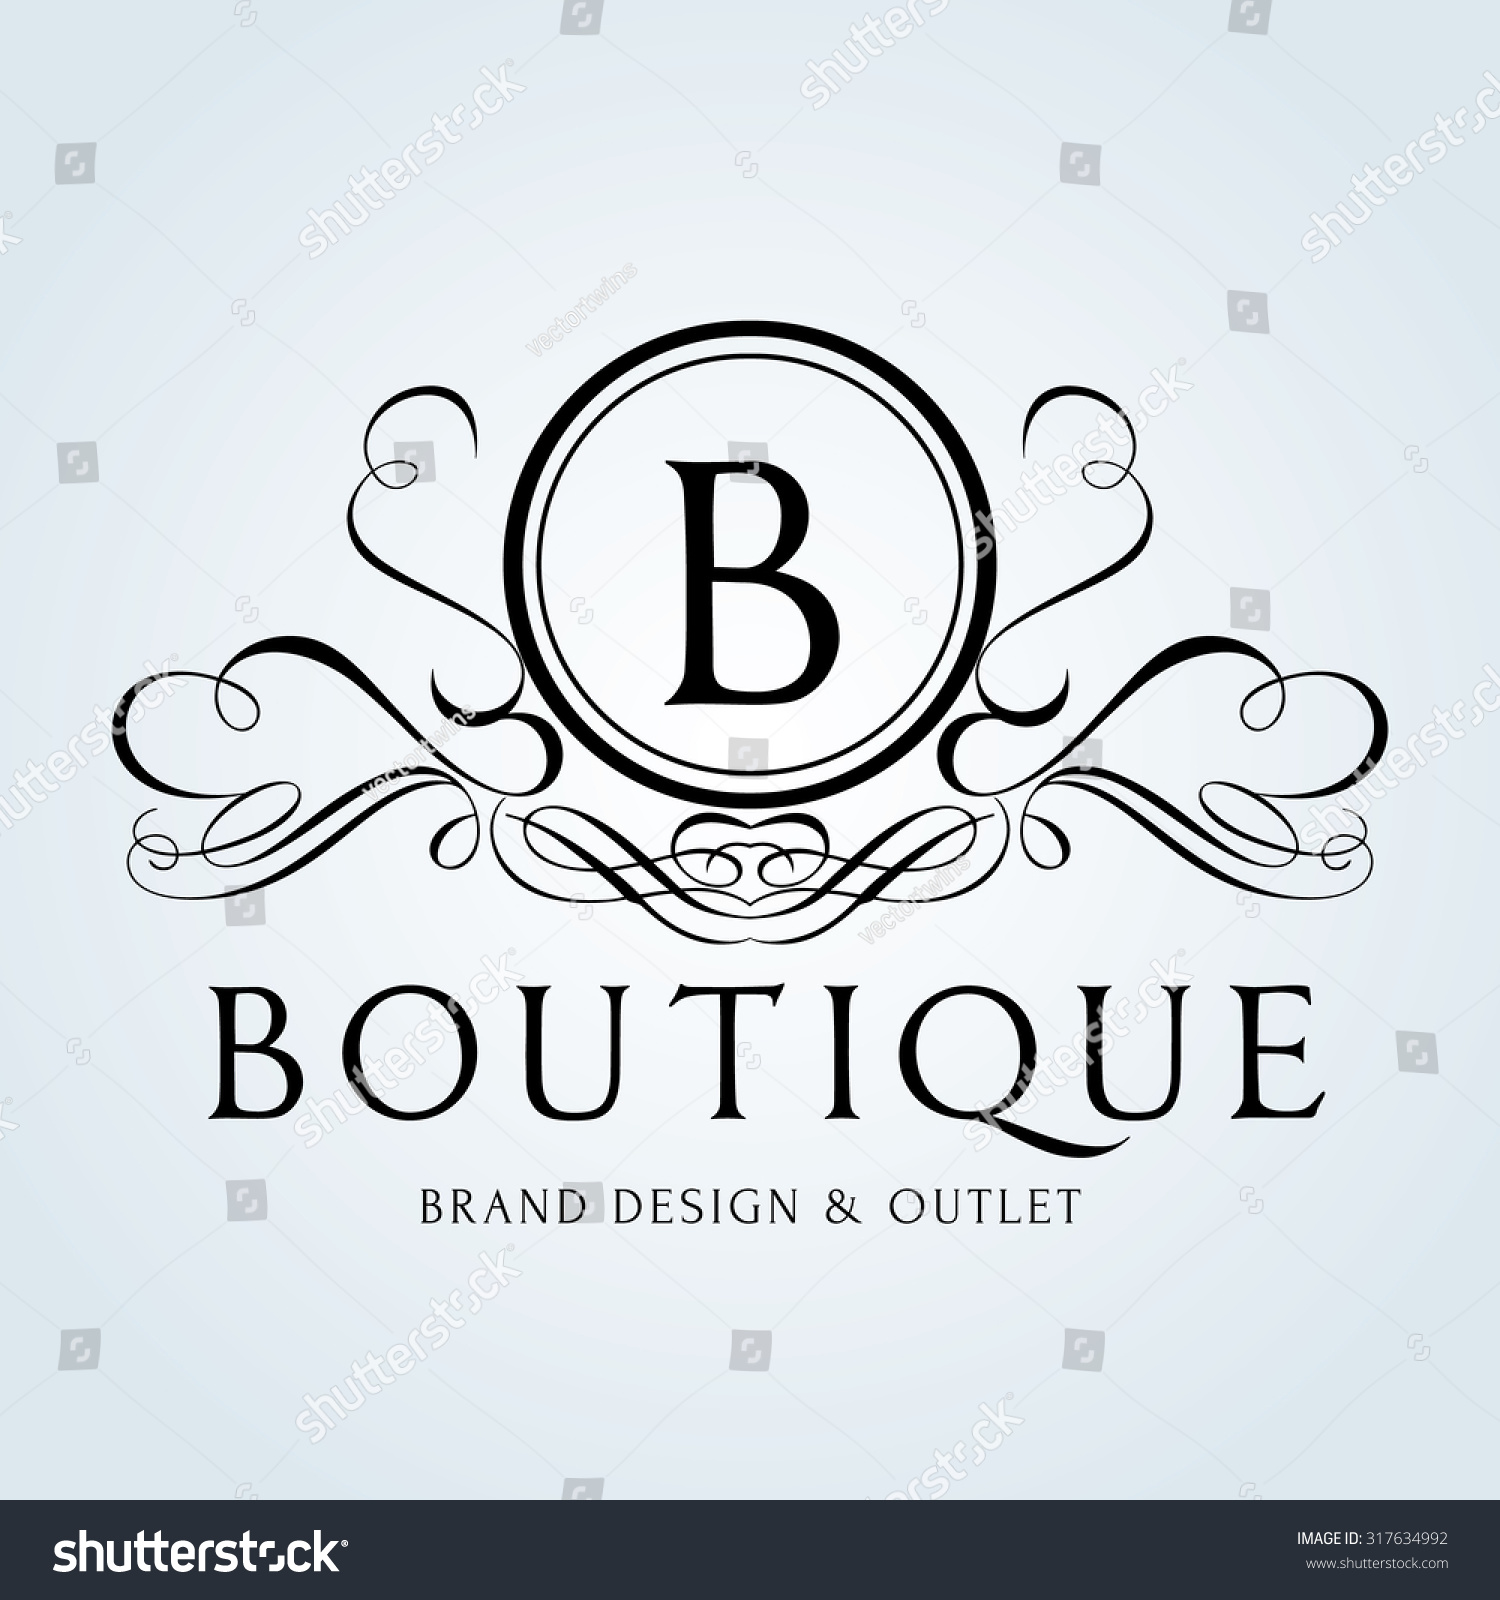 Luxury vintage crests logo crest business sign identity for Boutique hotel logo